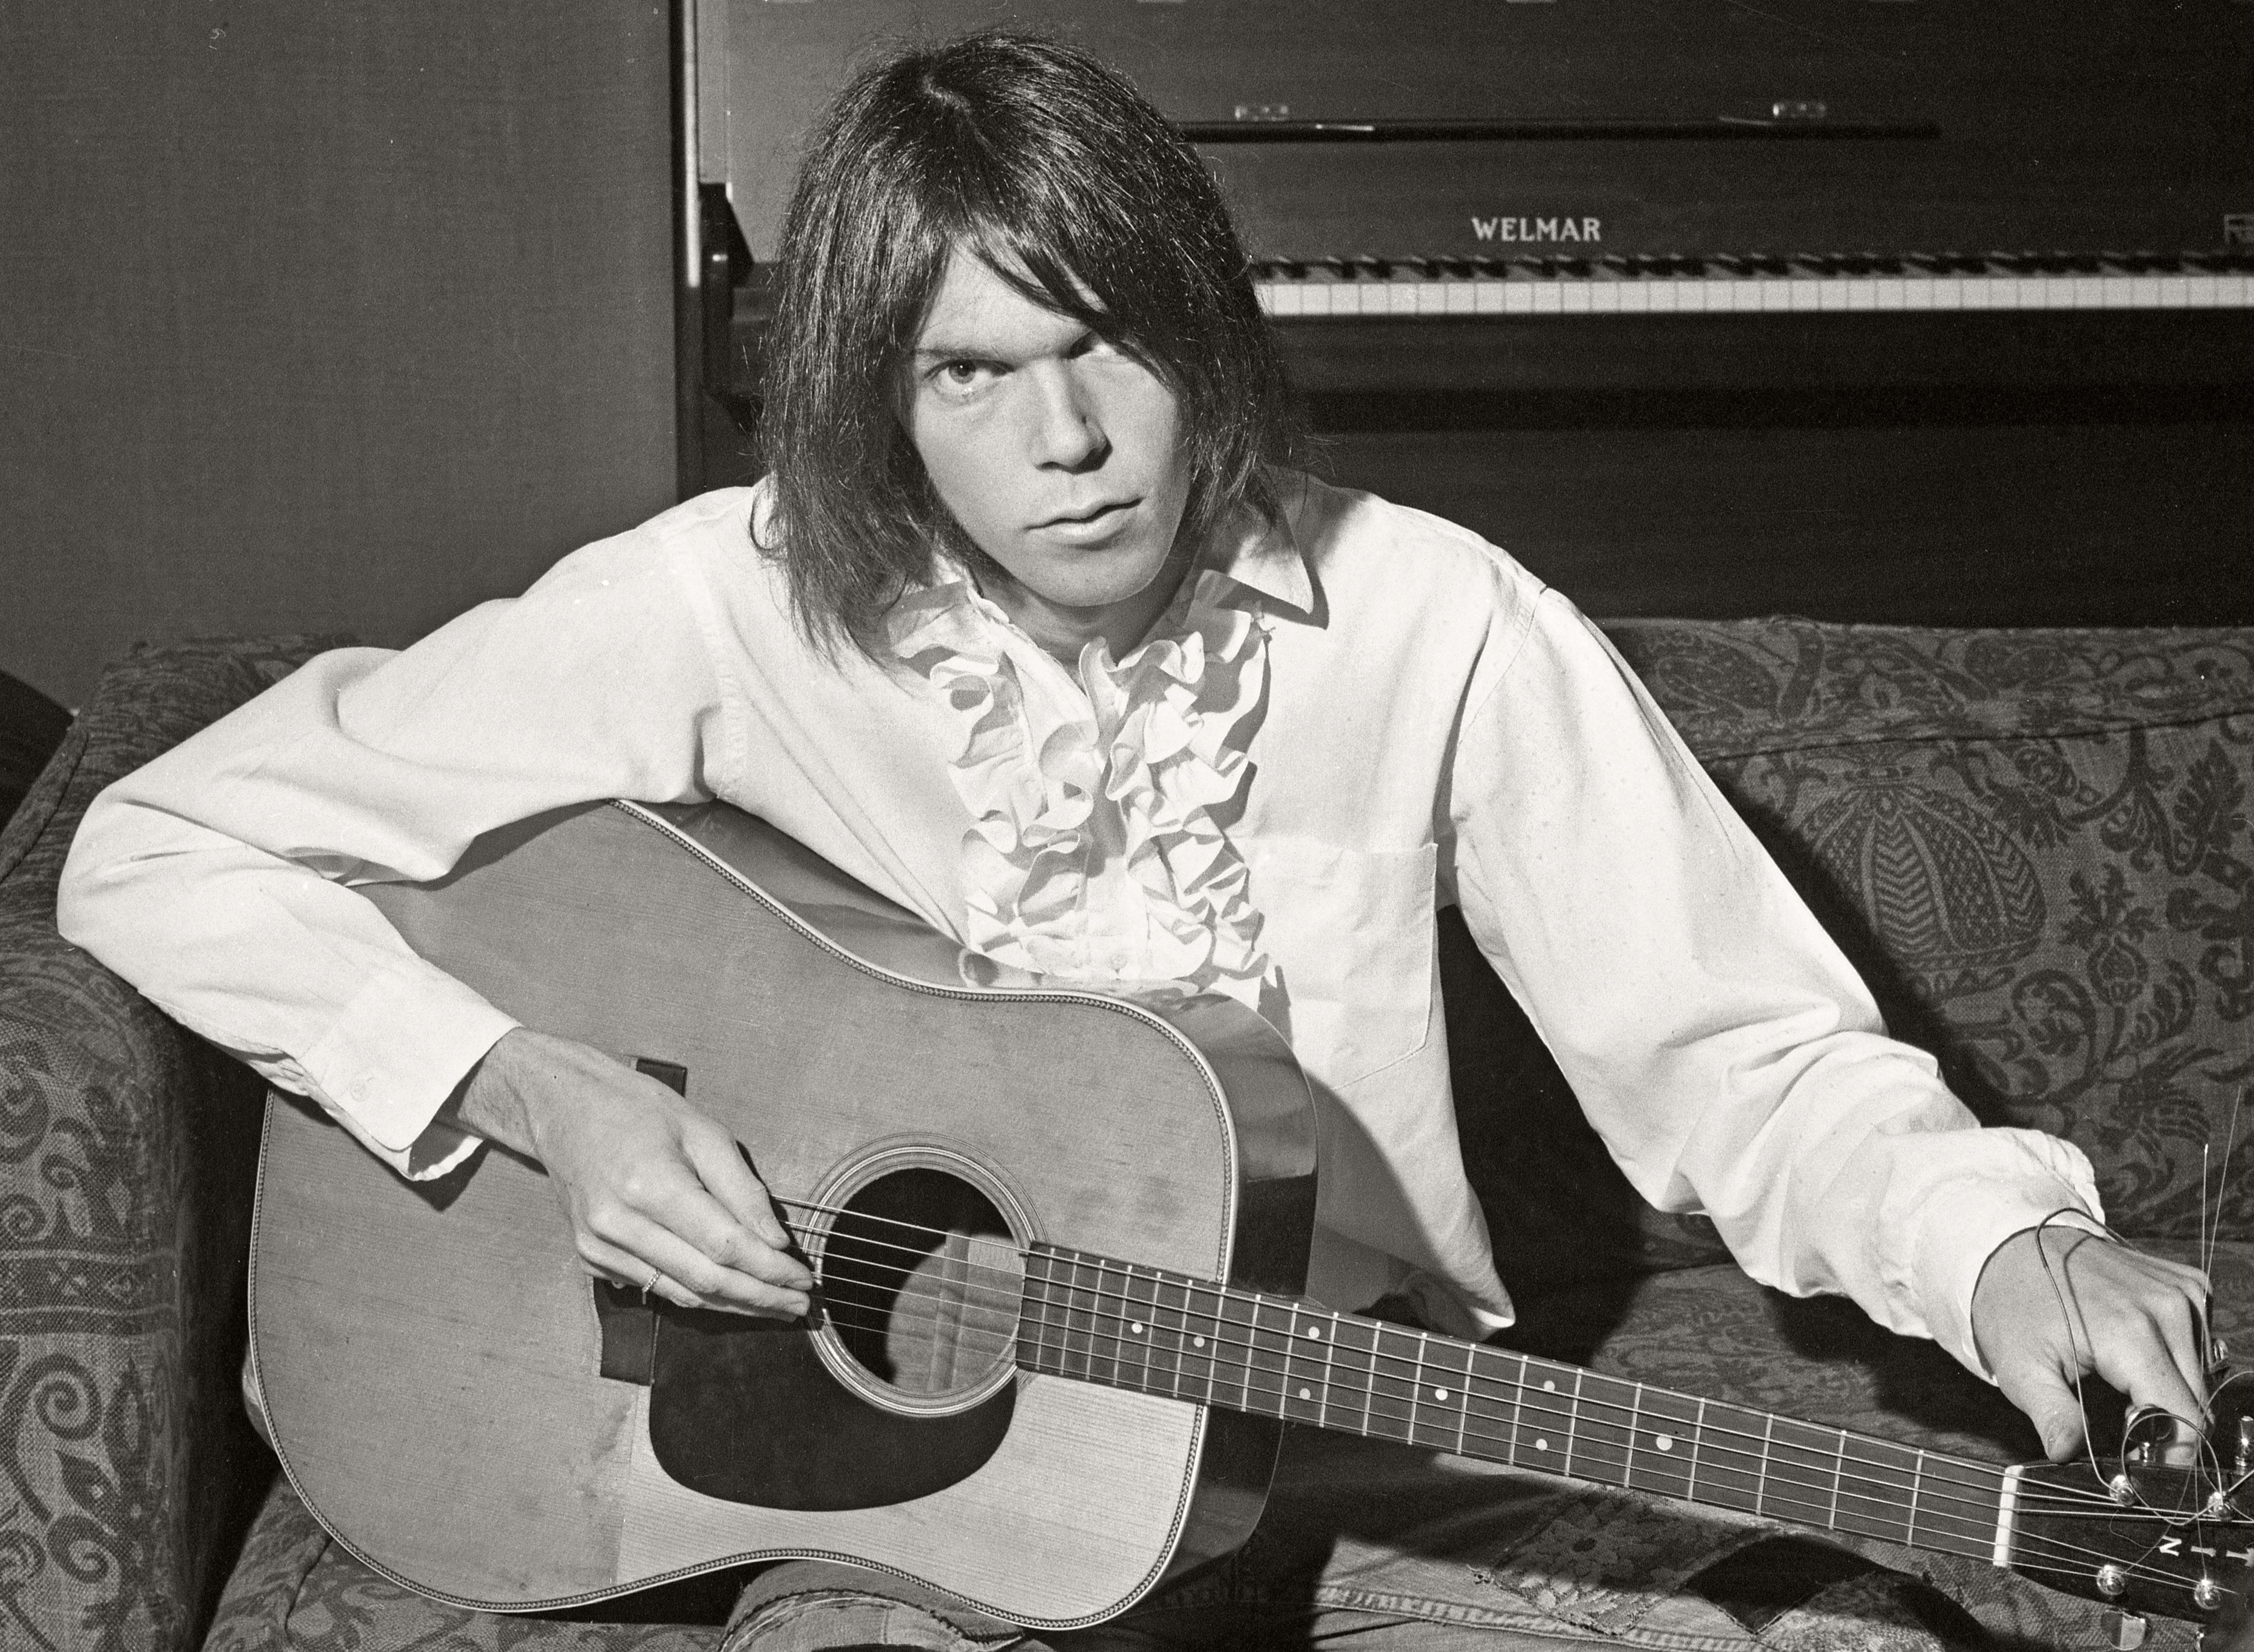 50 Years Ago Neil Young Wrote a Song That Changed a Generation of Protest Music